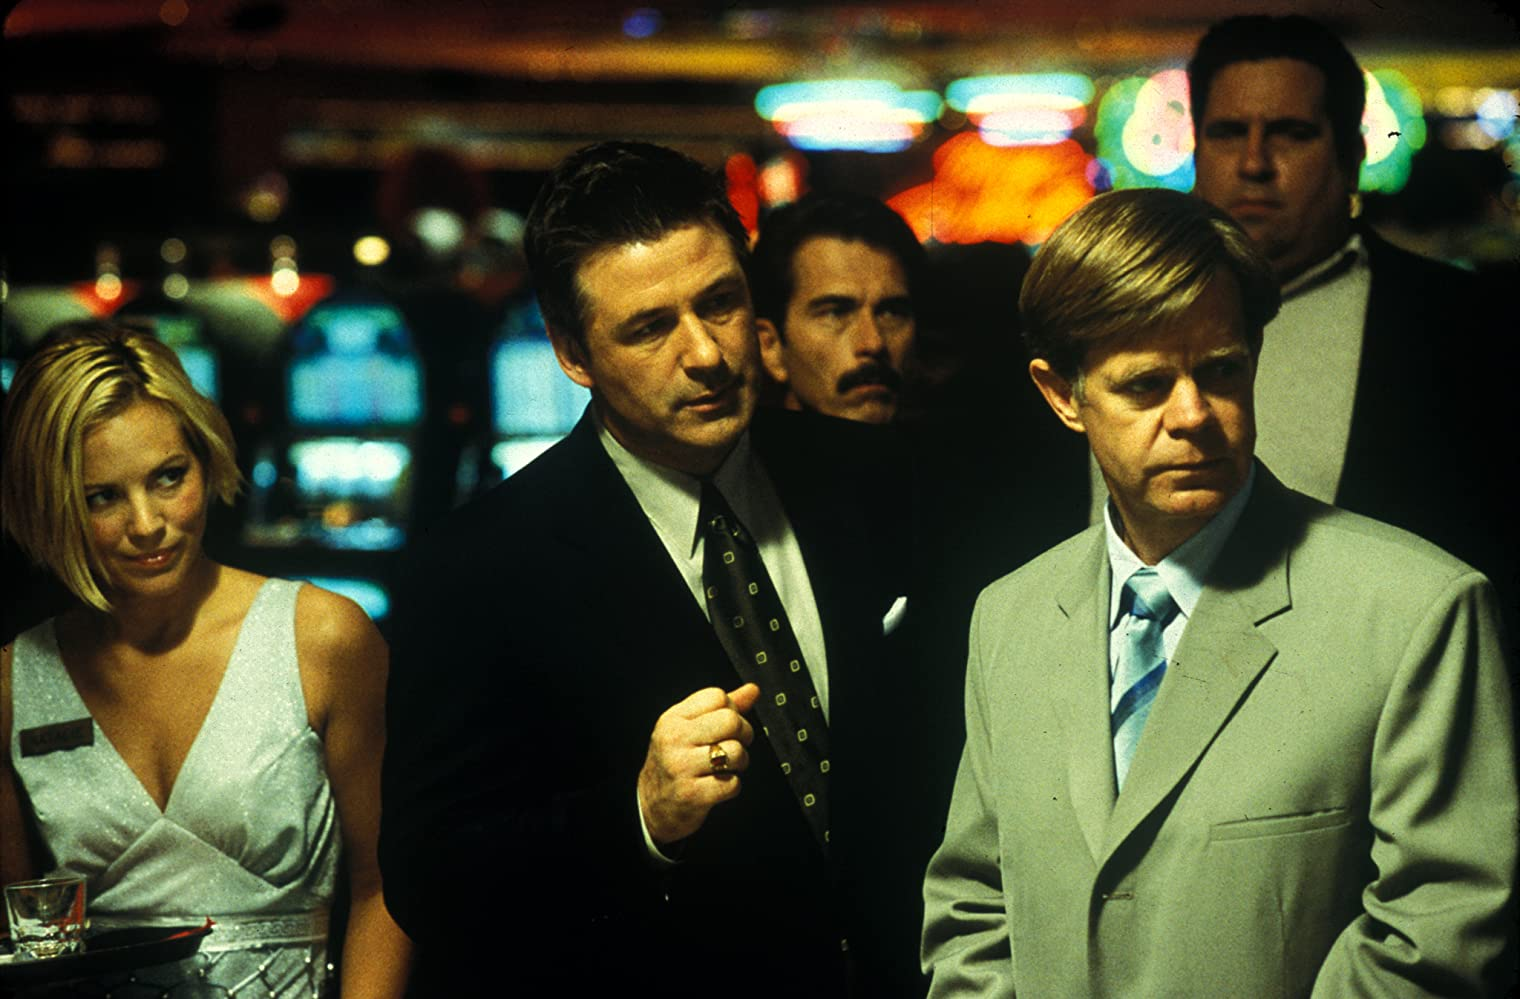 Alec Baldwin, William H. Macy, and Maria Bello in The Cooler (2003)